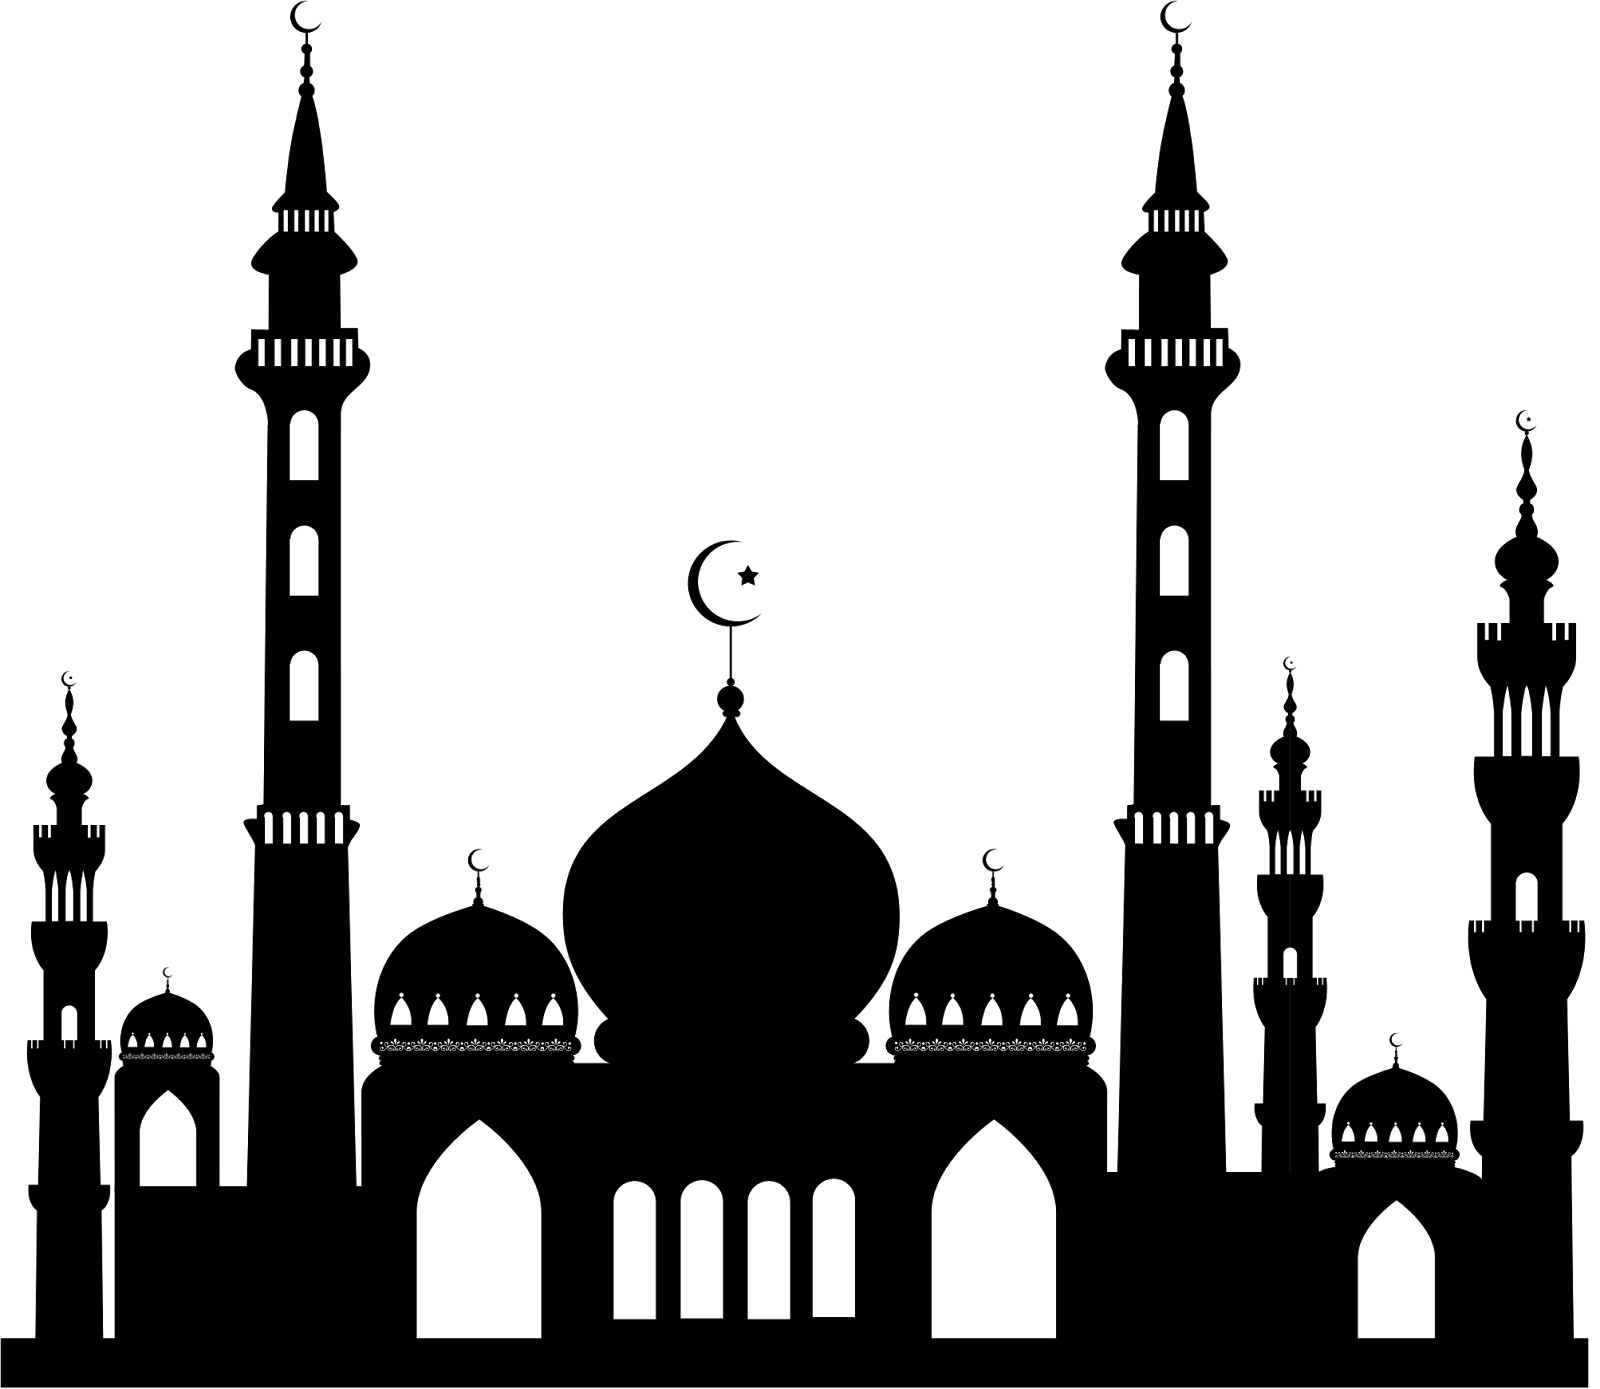 Background Rumah Animasi Gambar Masjid Vector Picture Rumah Minimalis